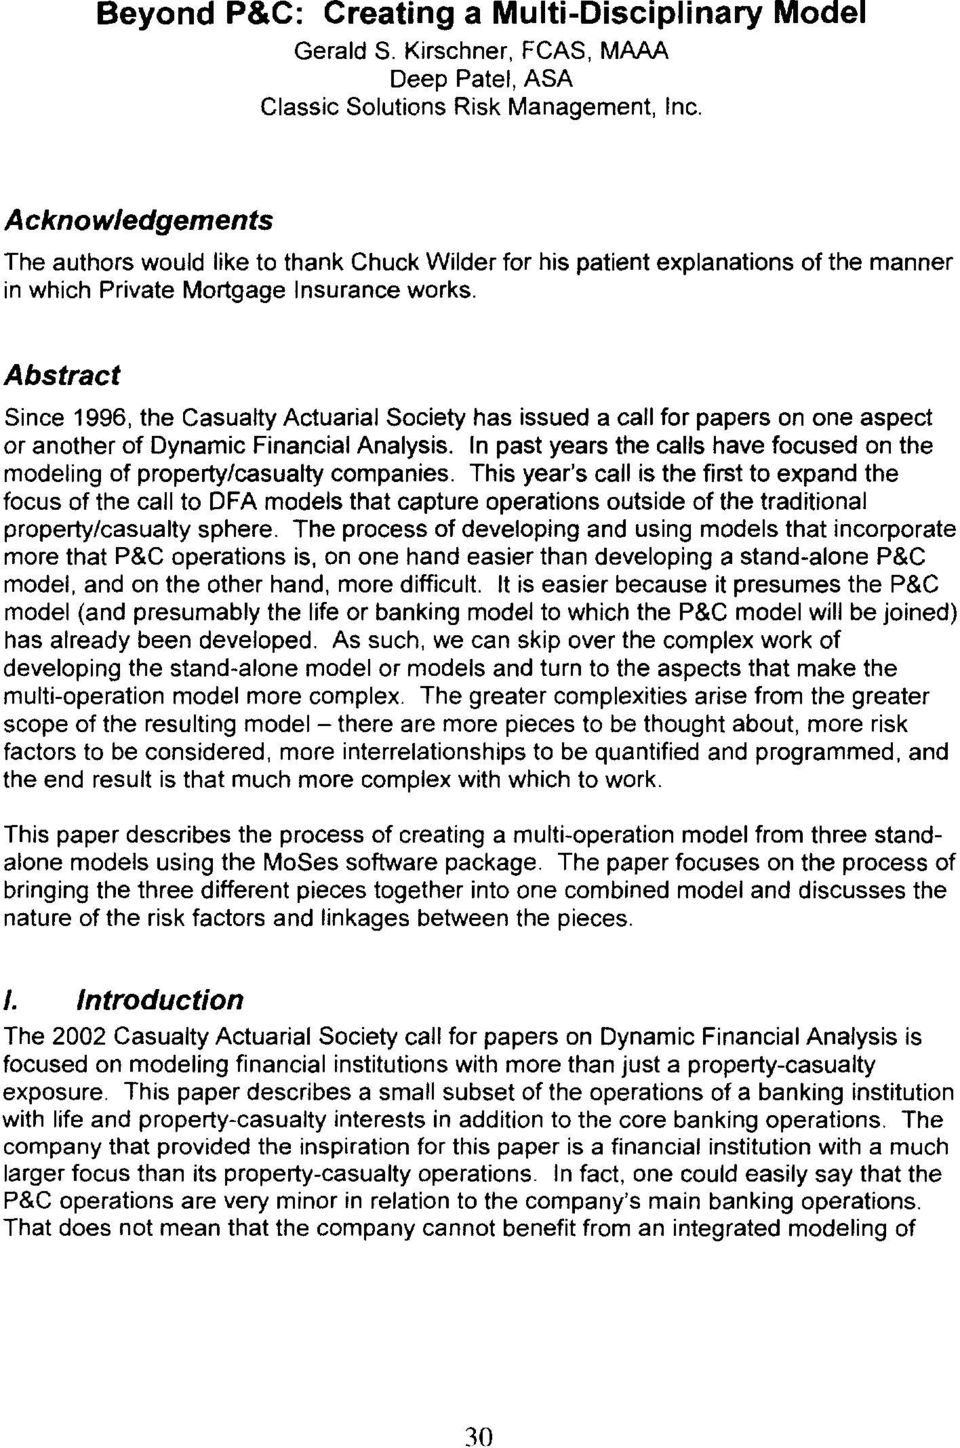 Abstract Since 1996, the Casualty Actuarial Society has issued a call for papers on one aspect or another of Dynamic Financial Analysis.